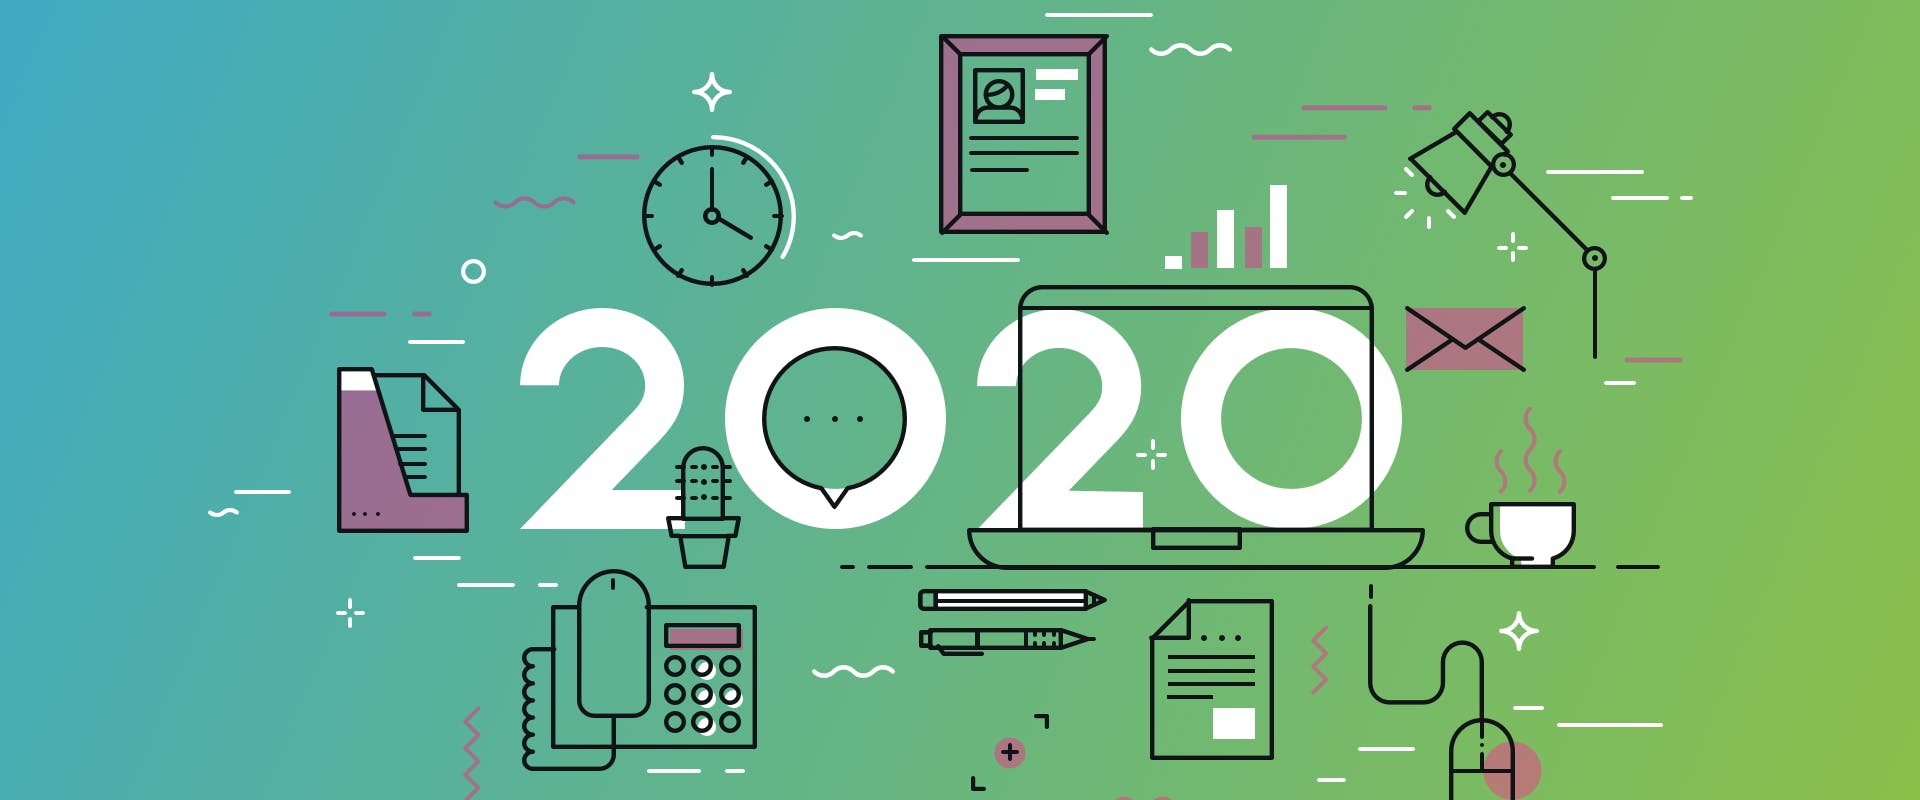 2020 podcasting review from Buzzsprout